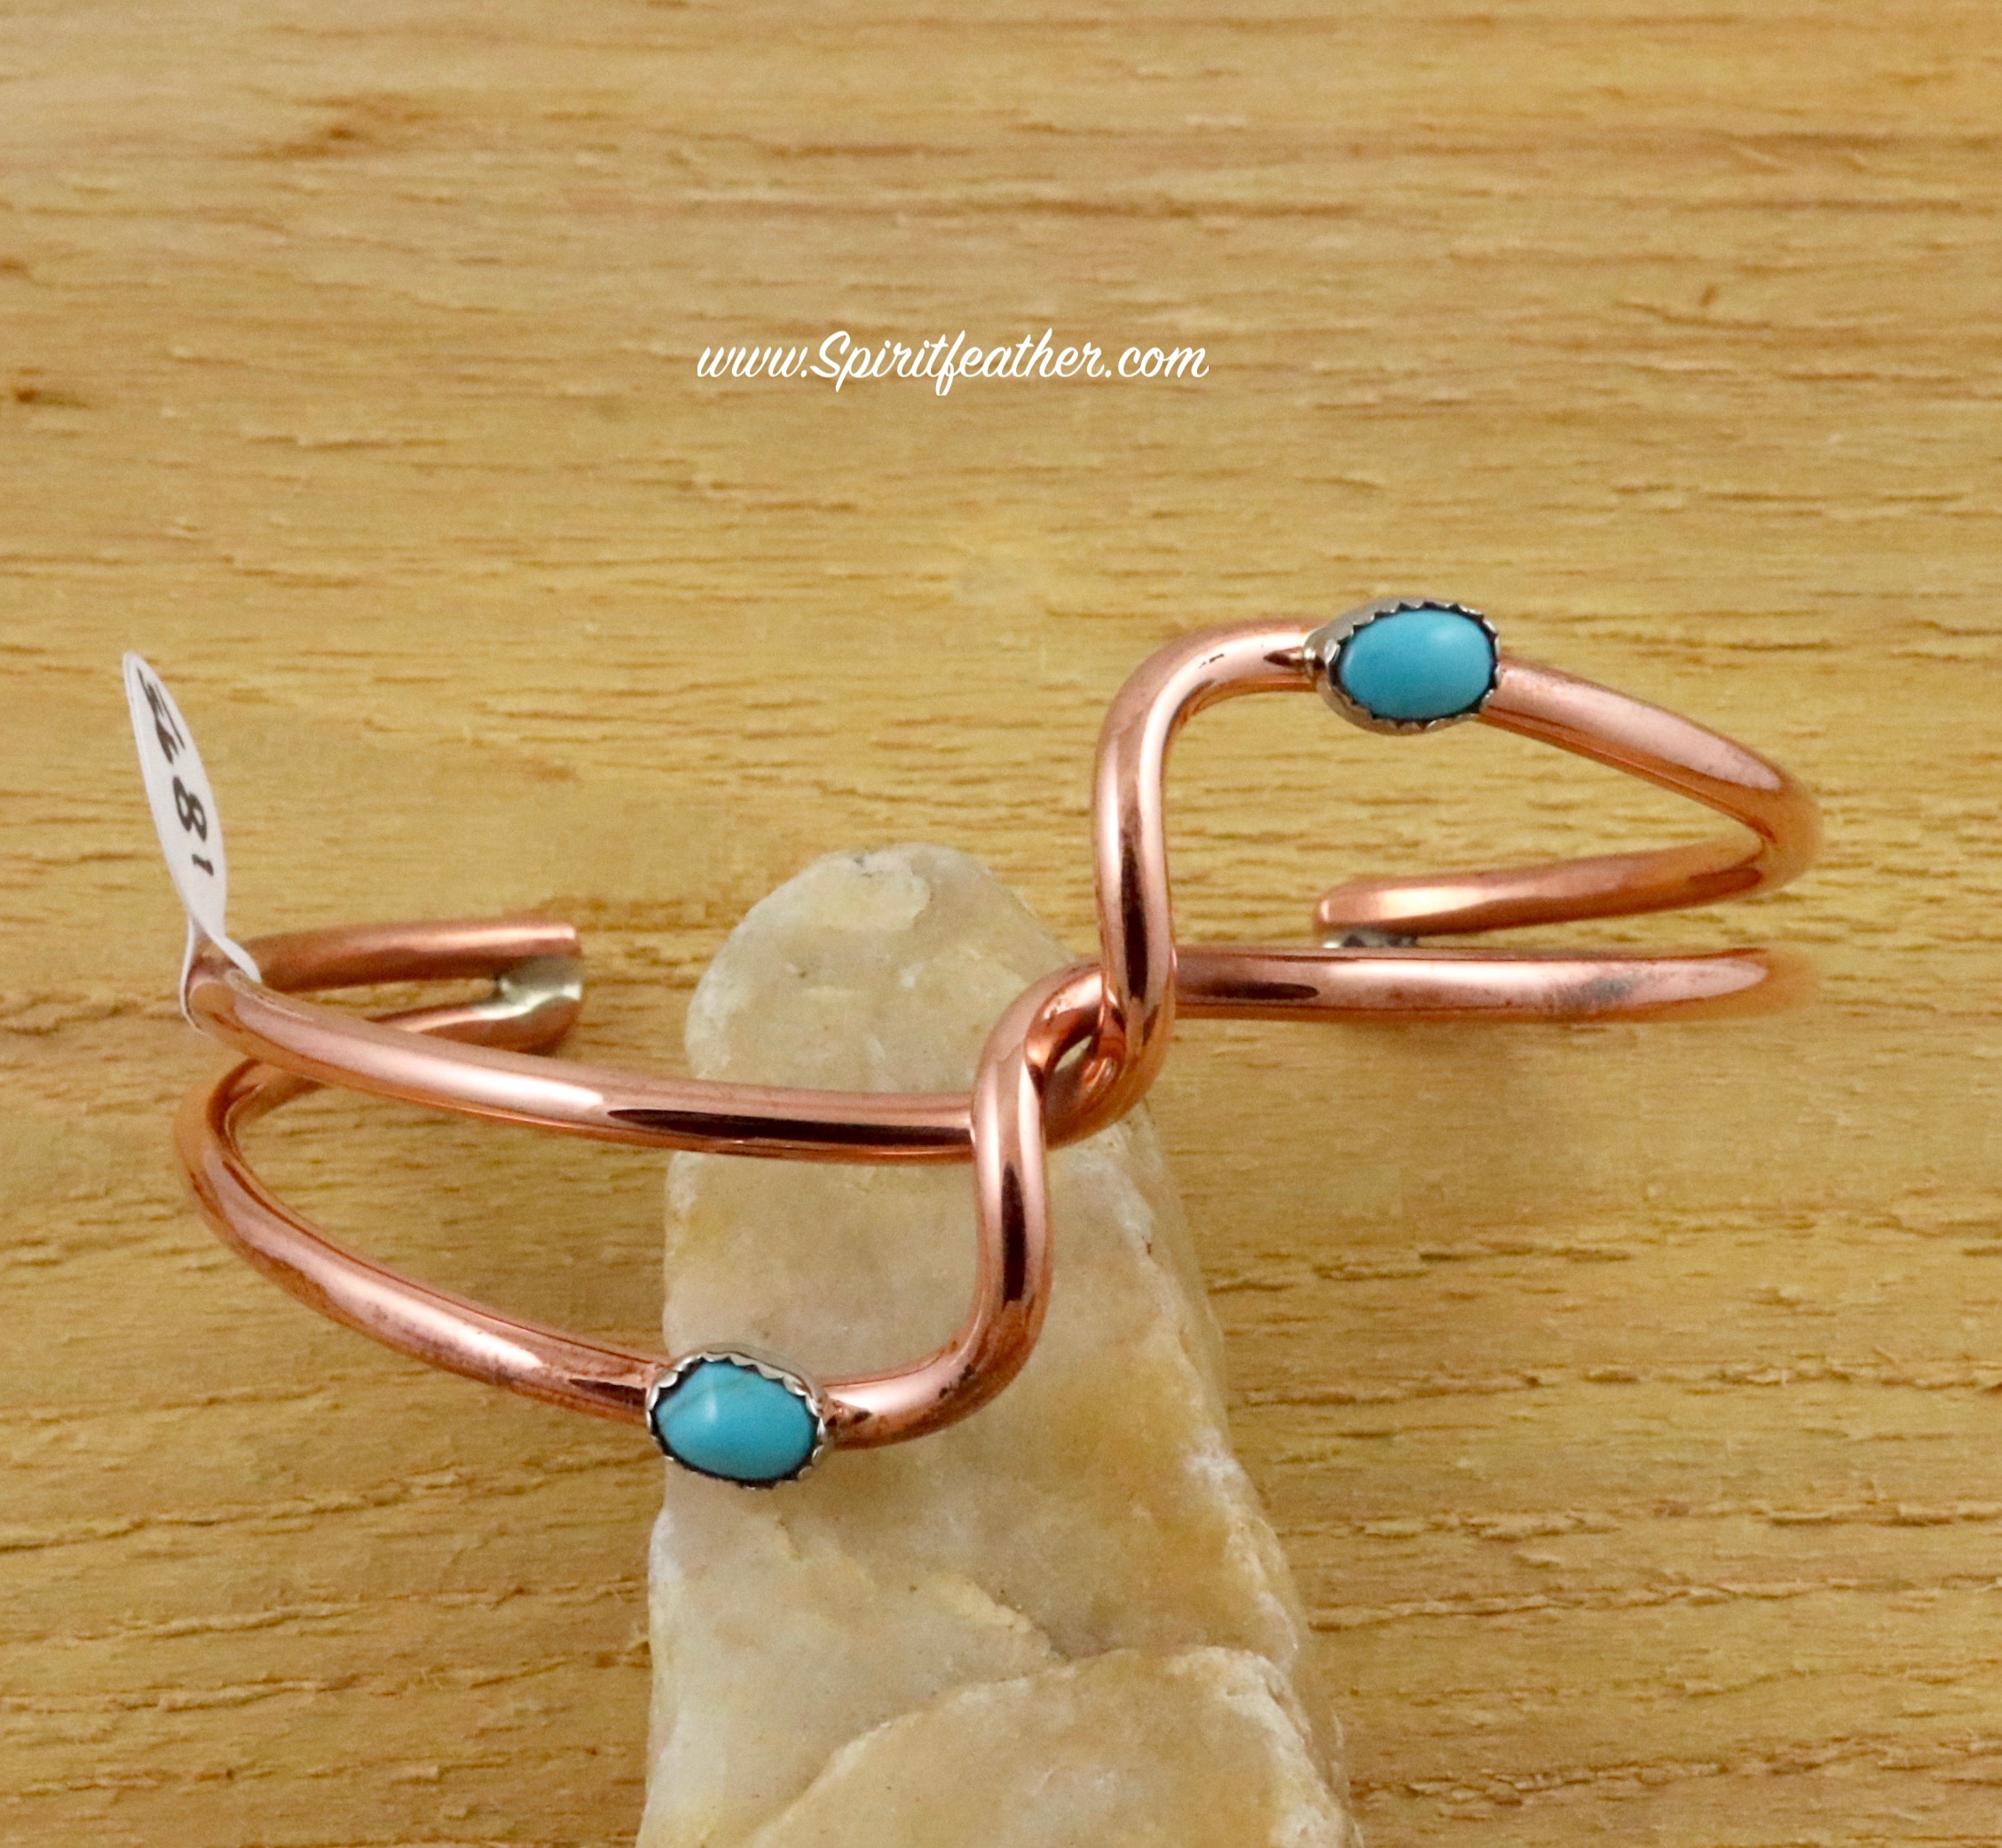 Copper cuff bracelet with double wave design with turquoise nugget